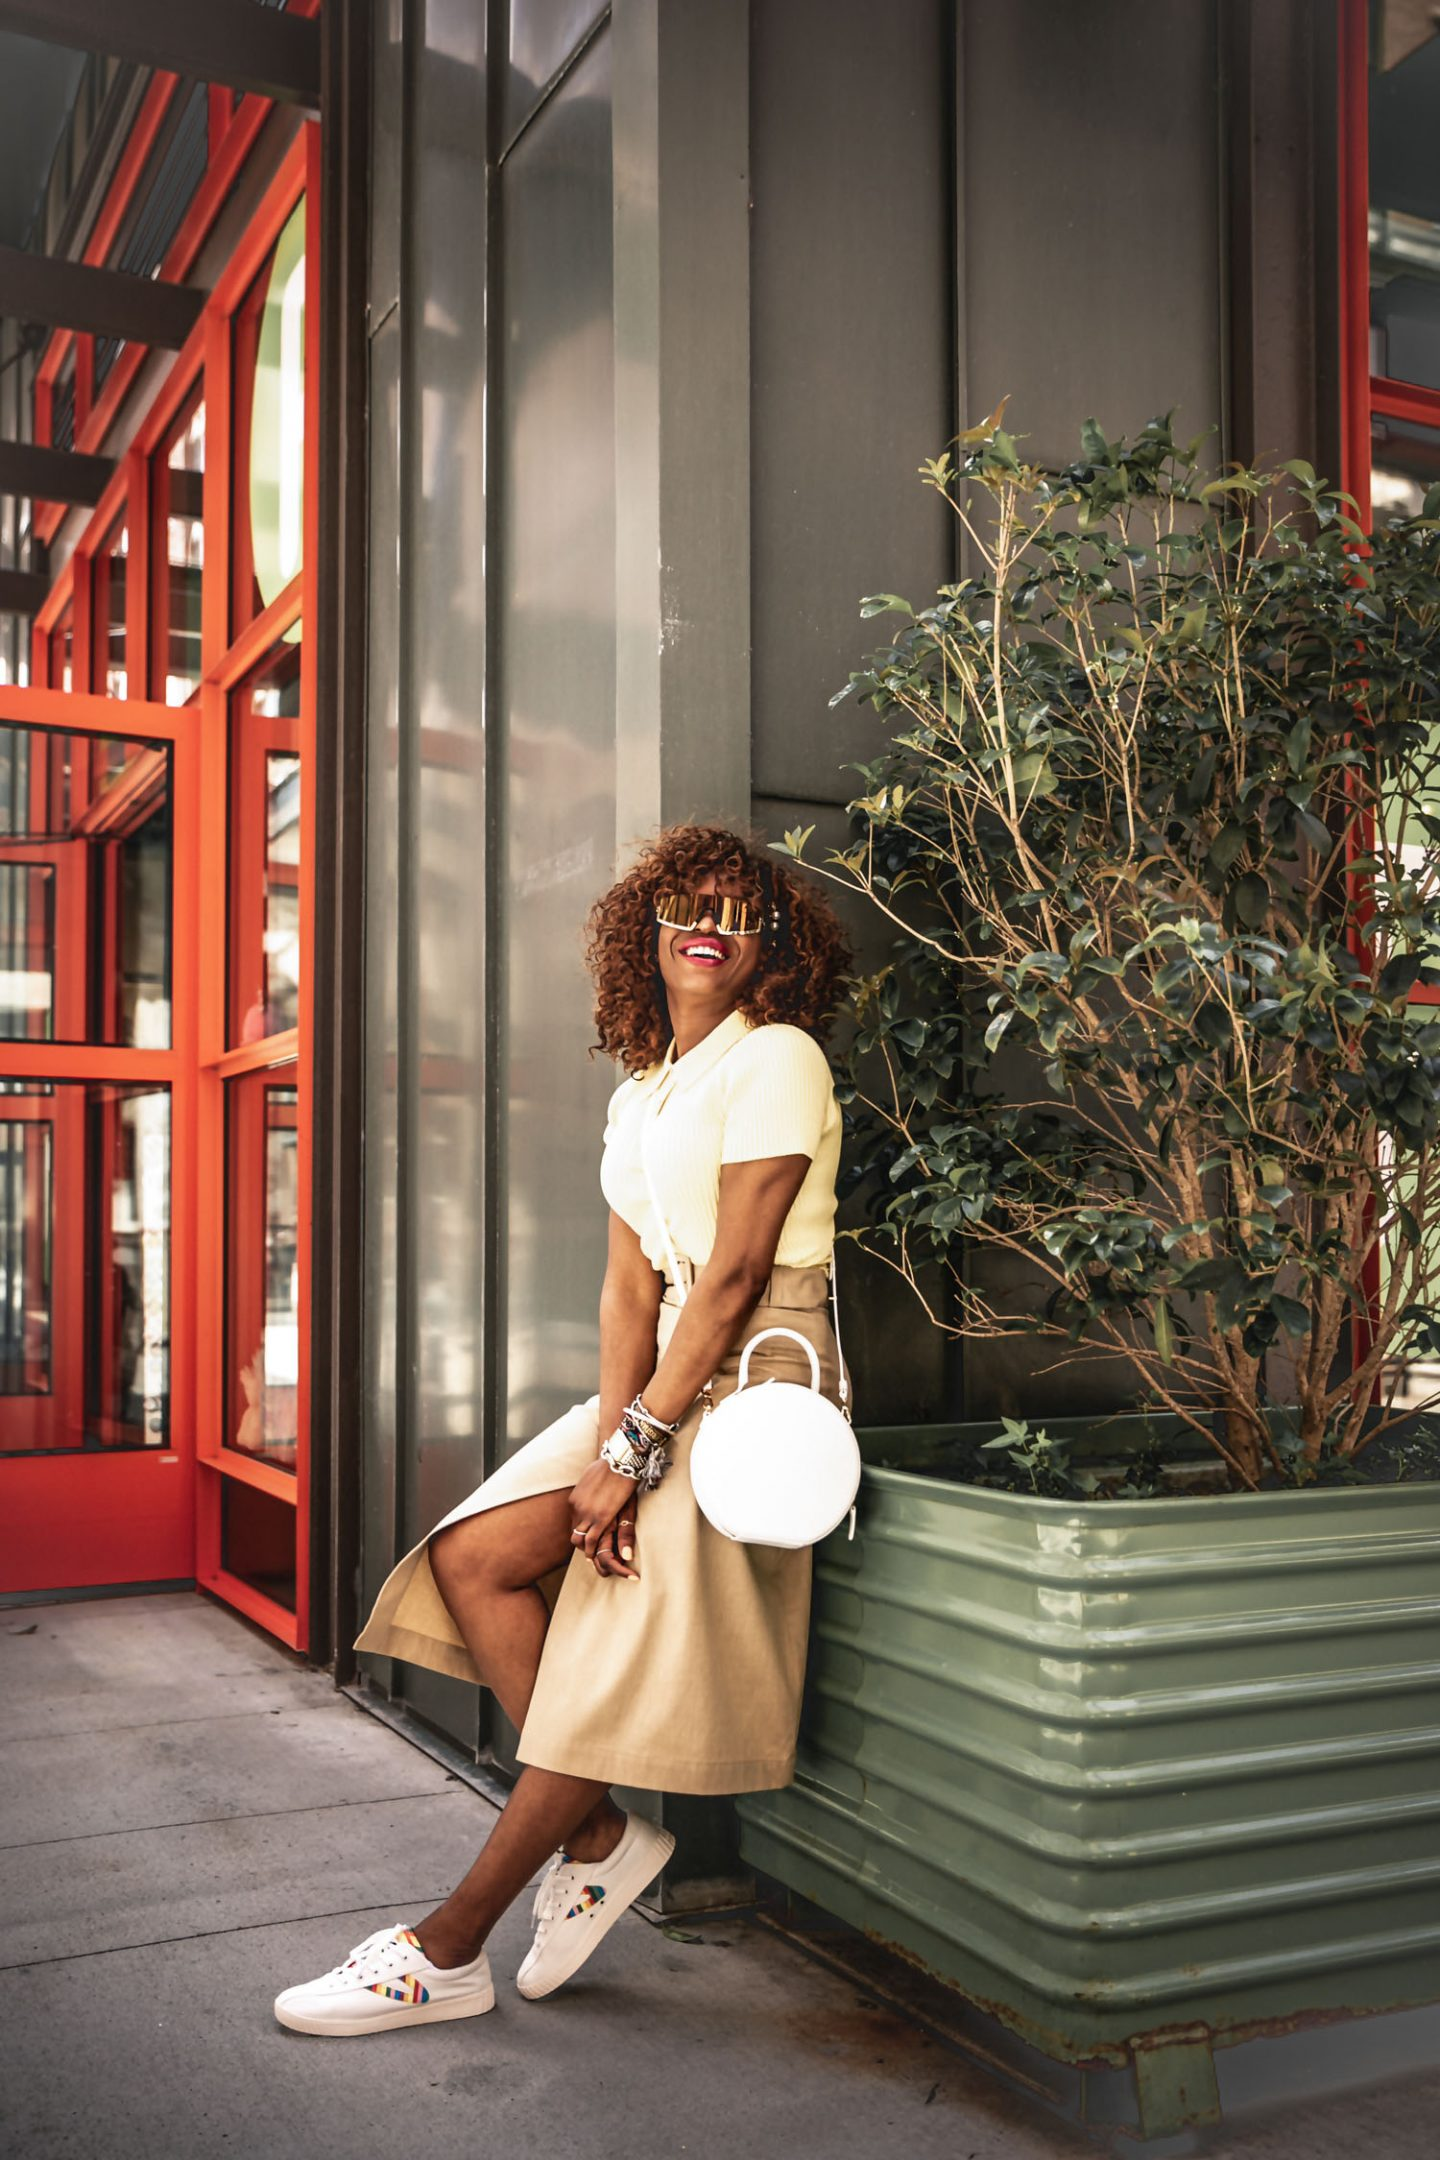 Atlanta fashion blogger Monica Awe-Etuk wearing & Other Stories yellow knit polo top, beige wrap skirt, Tretorn sneakers, white bag, and futuristic sunglasses